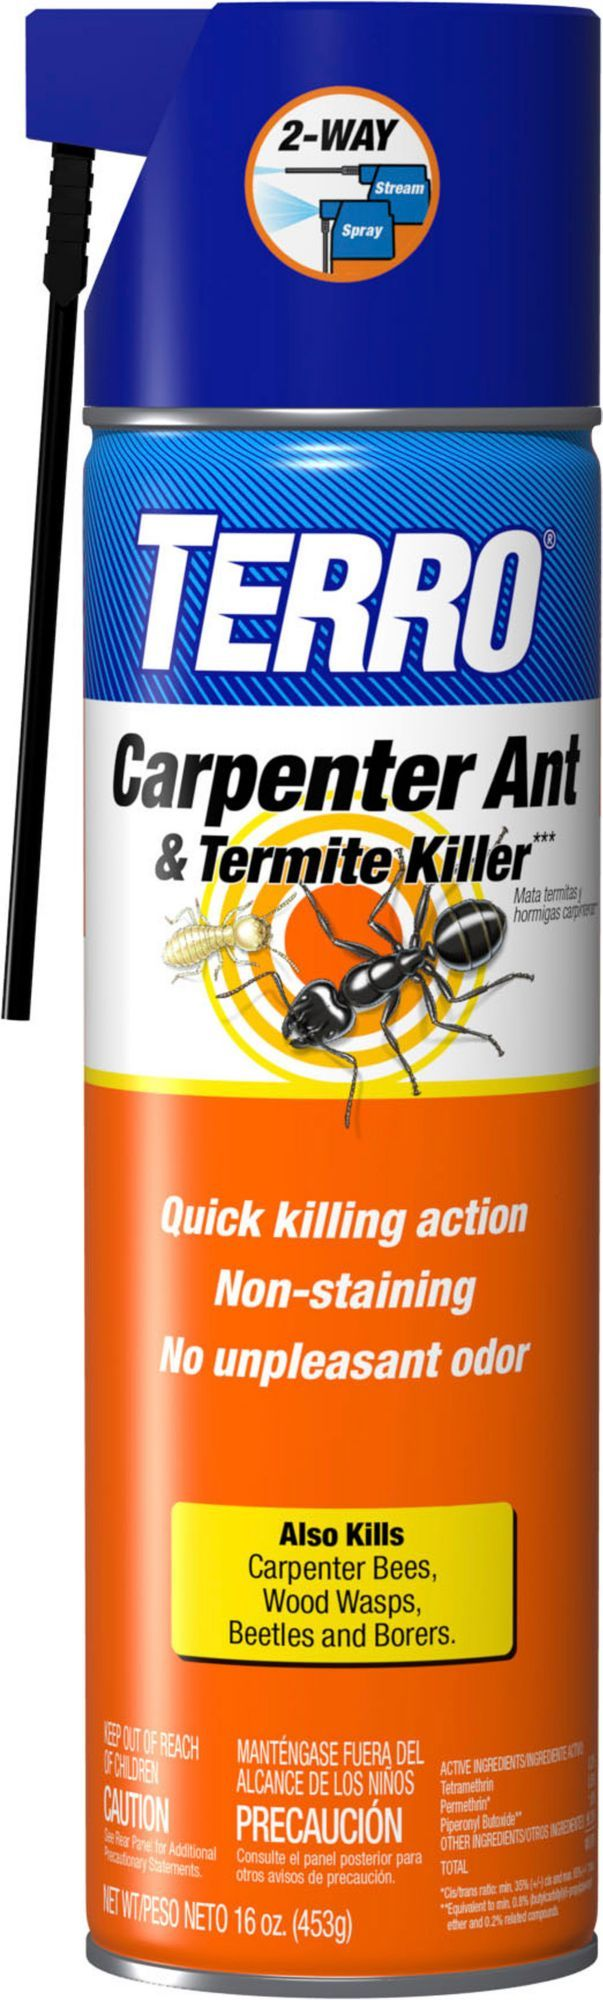 Uncategorized Spray To Kill Termites plus de 25 uniques dans la termite spray sur carpenter ant killer aerosol fourmissprays